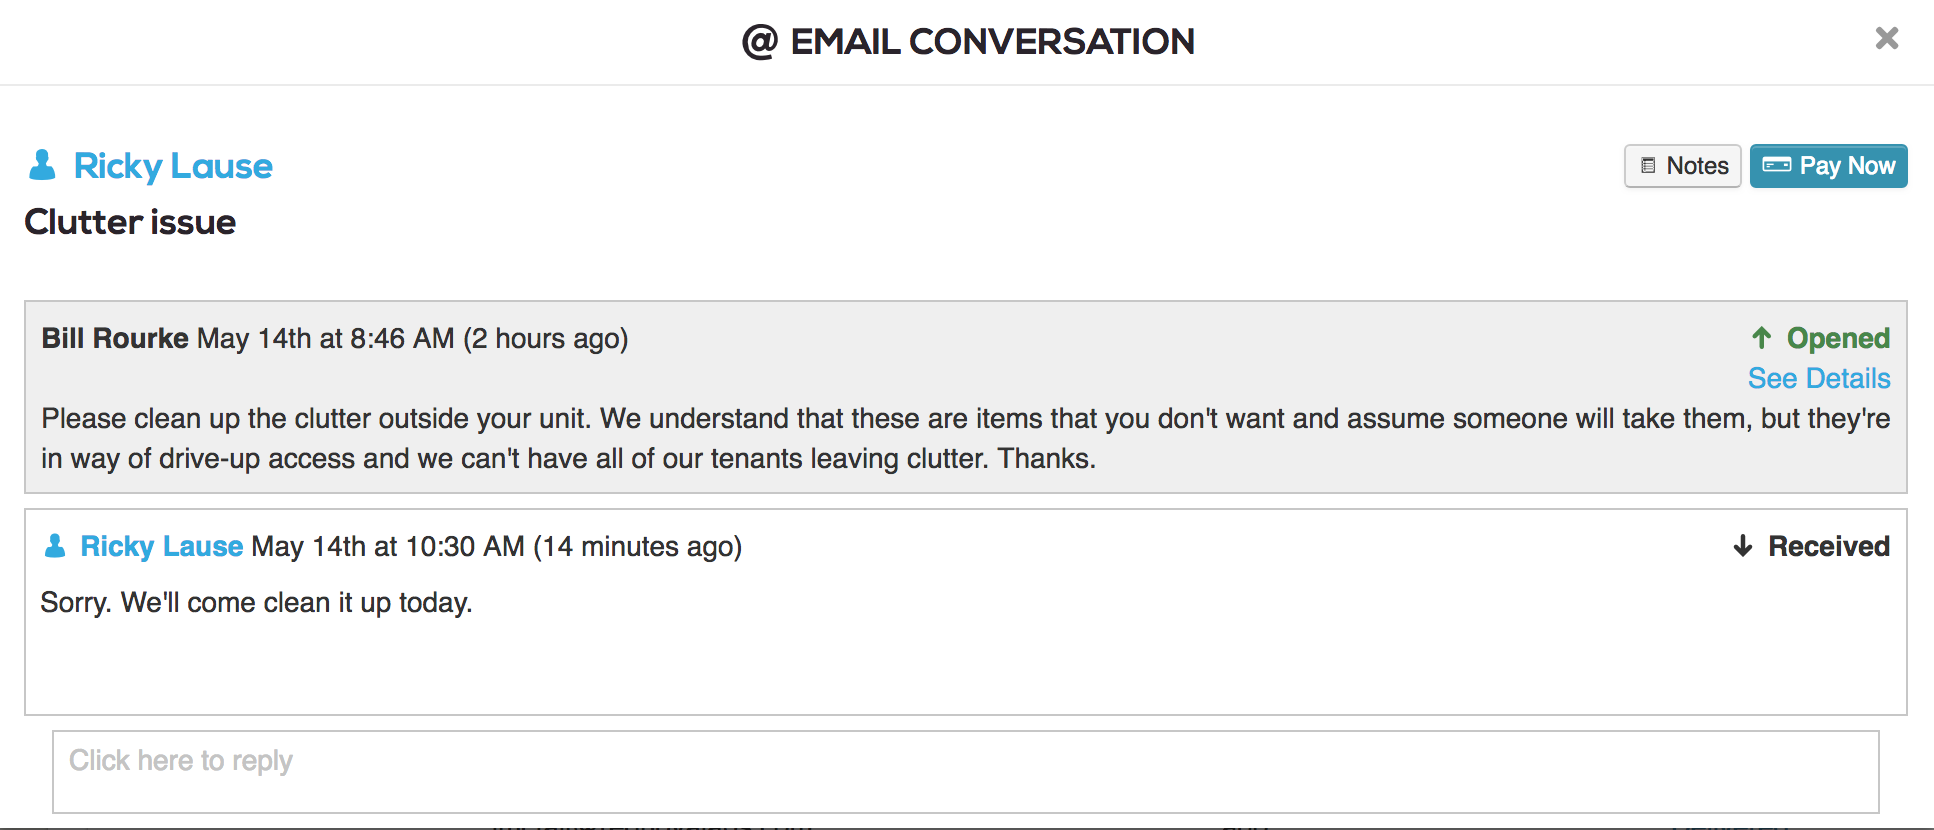 email_conversation.png